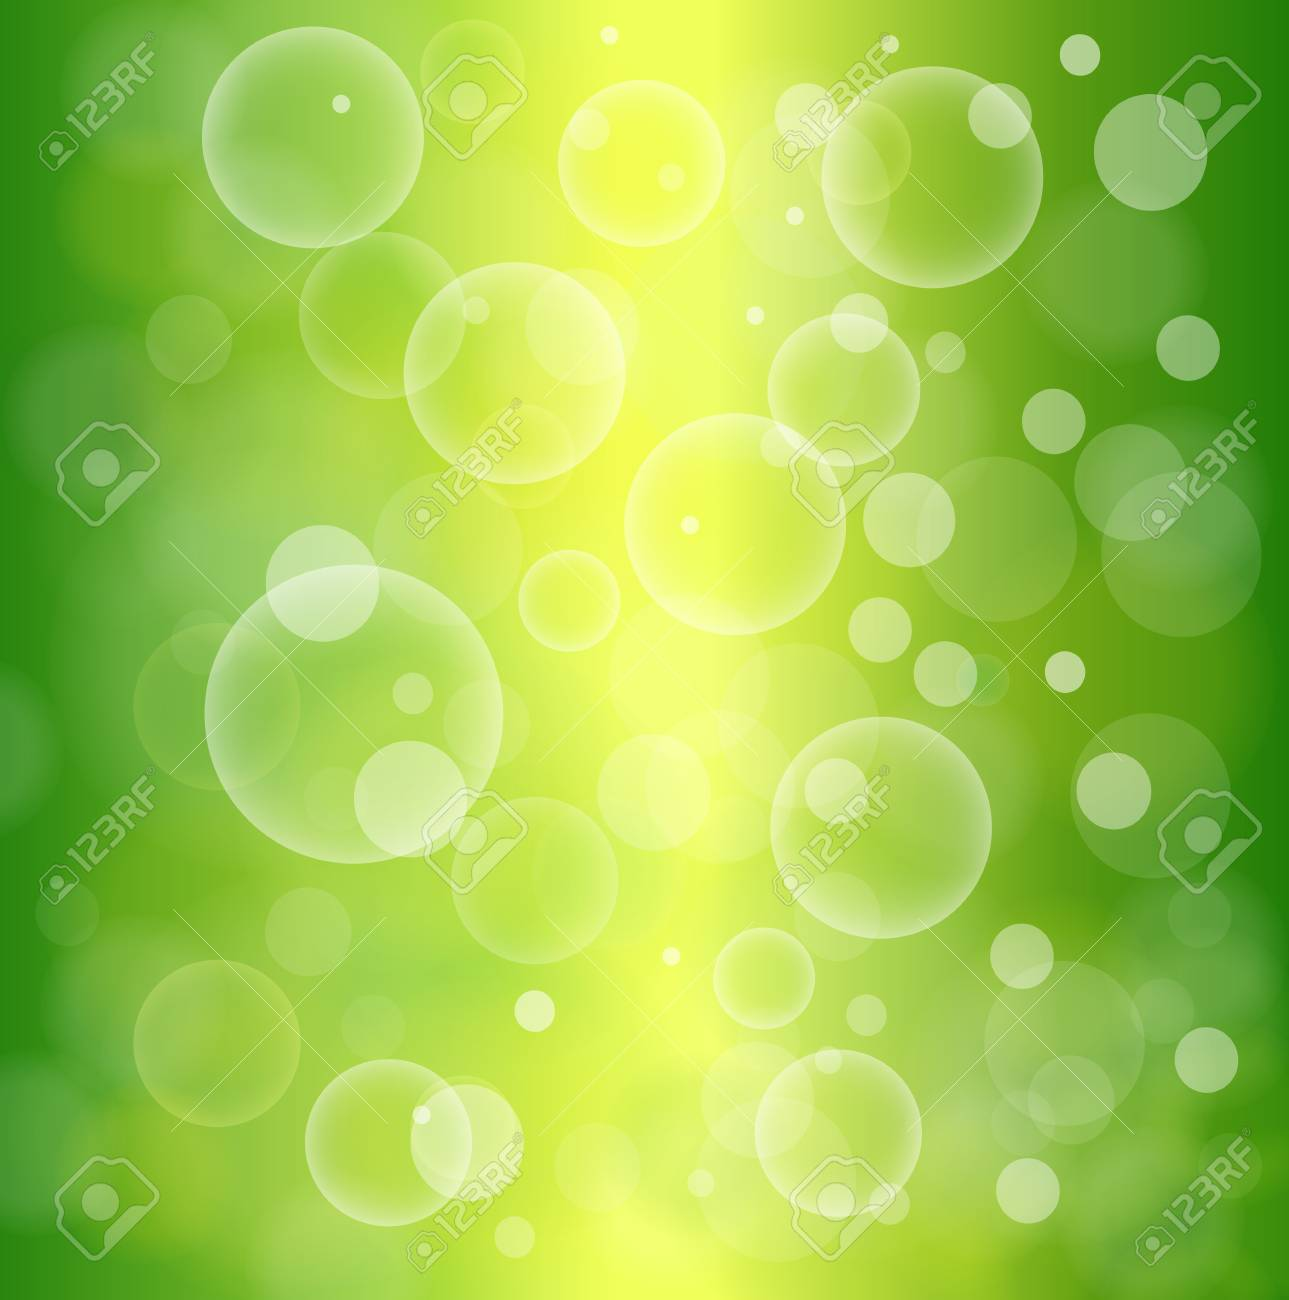 Green abstract background, vector illustration. Stock Vector - 25042330